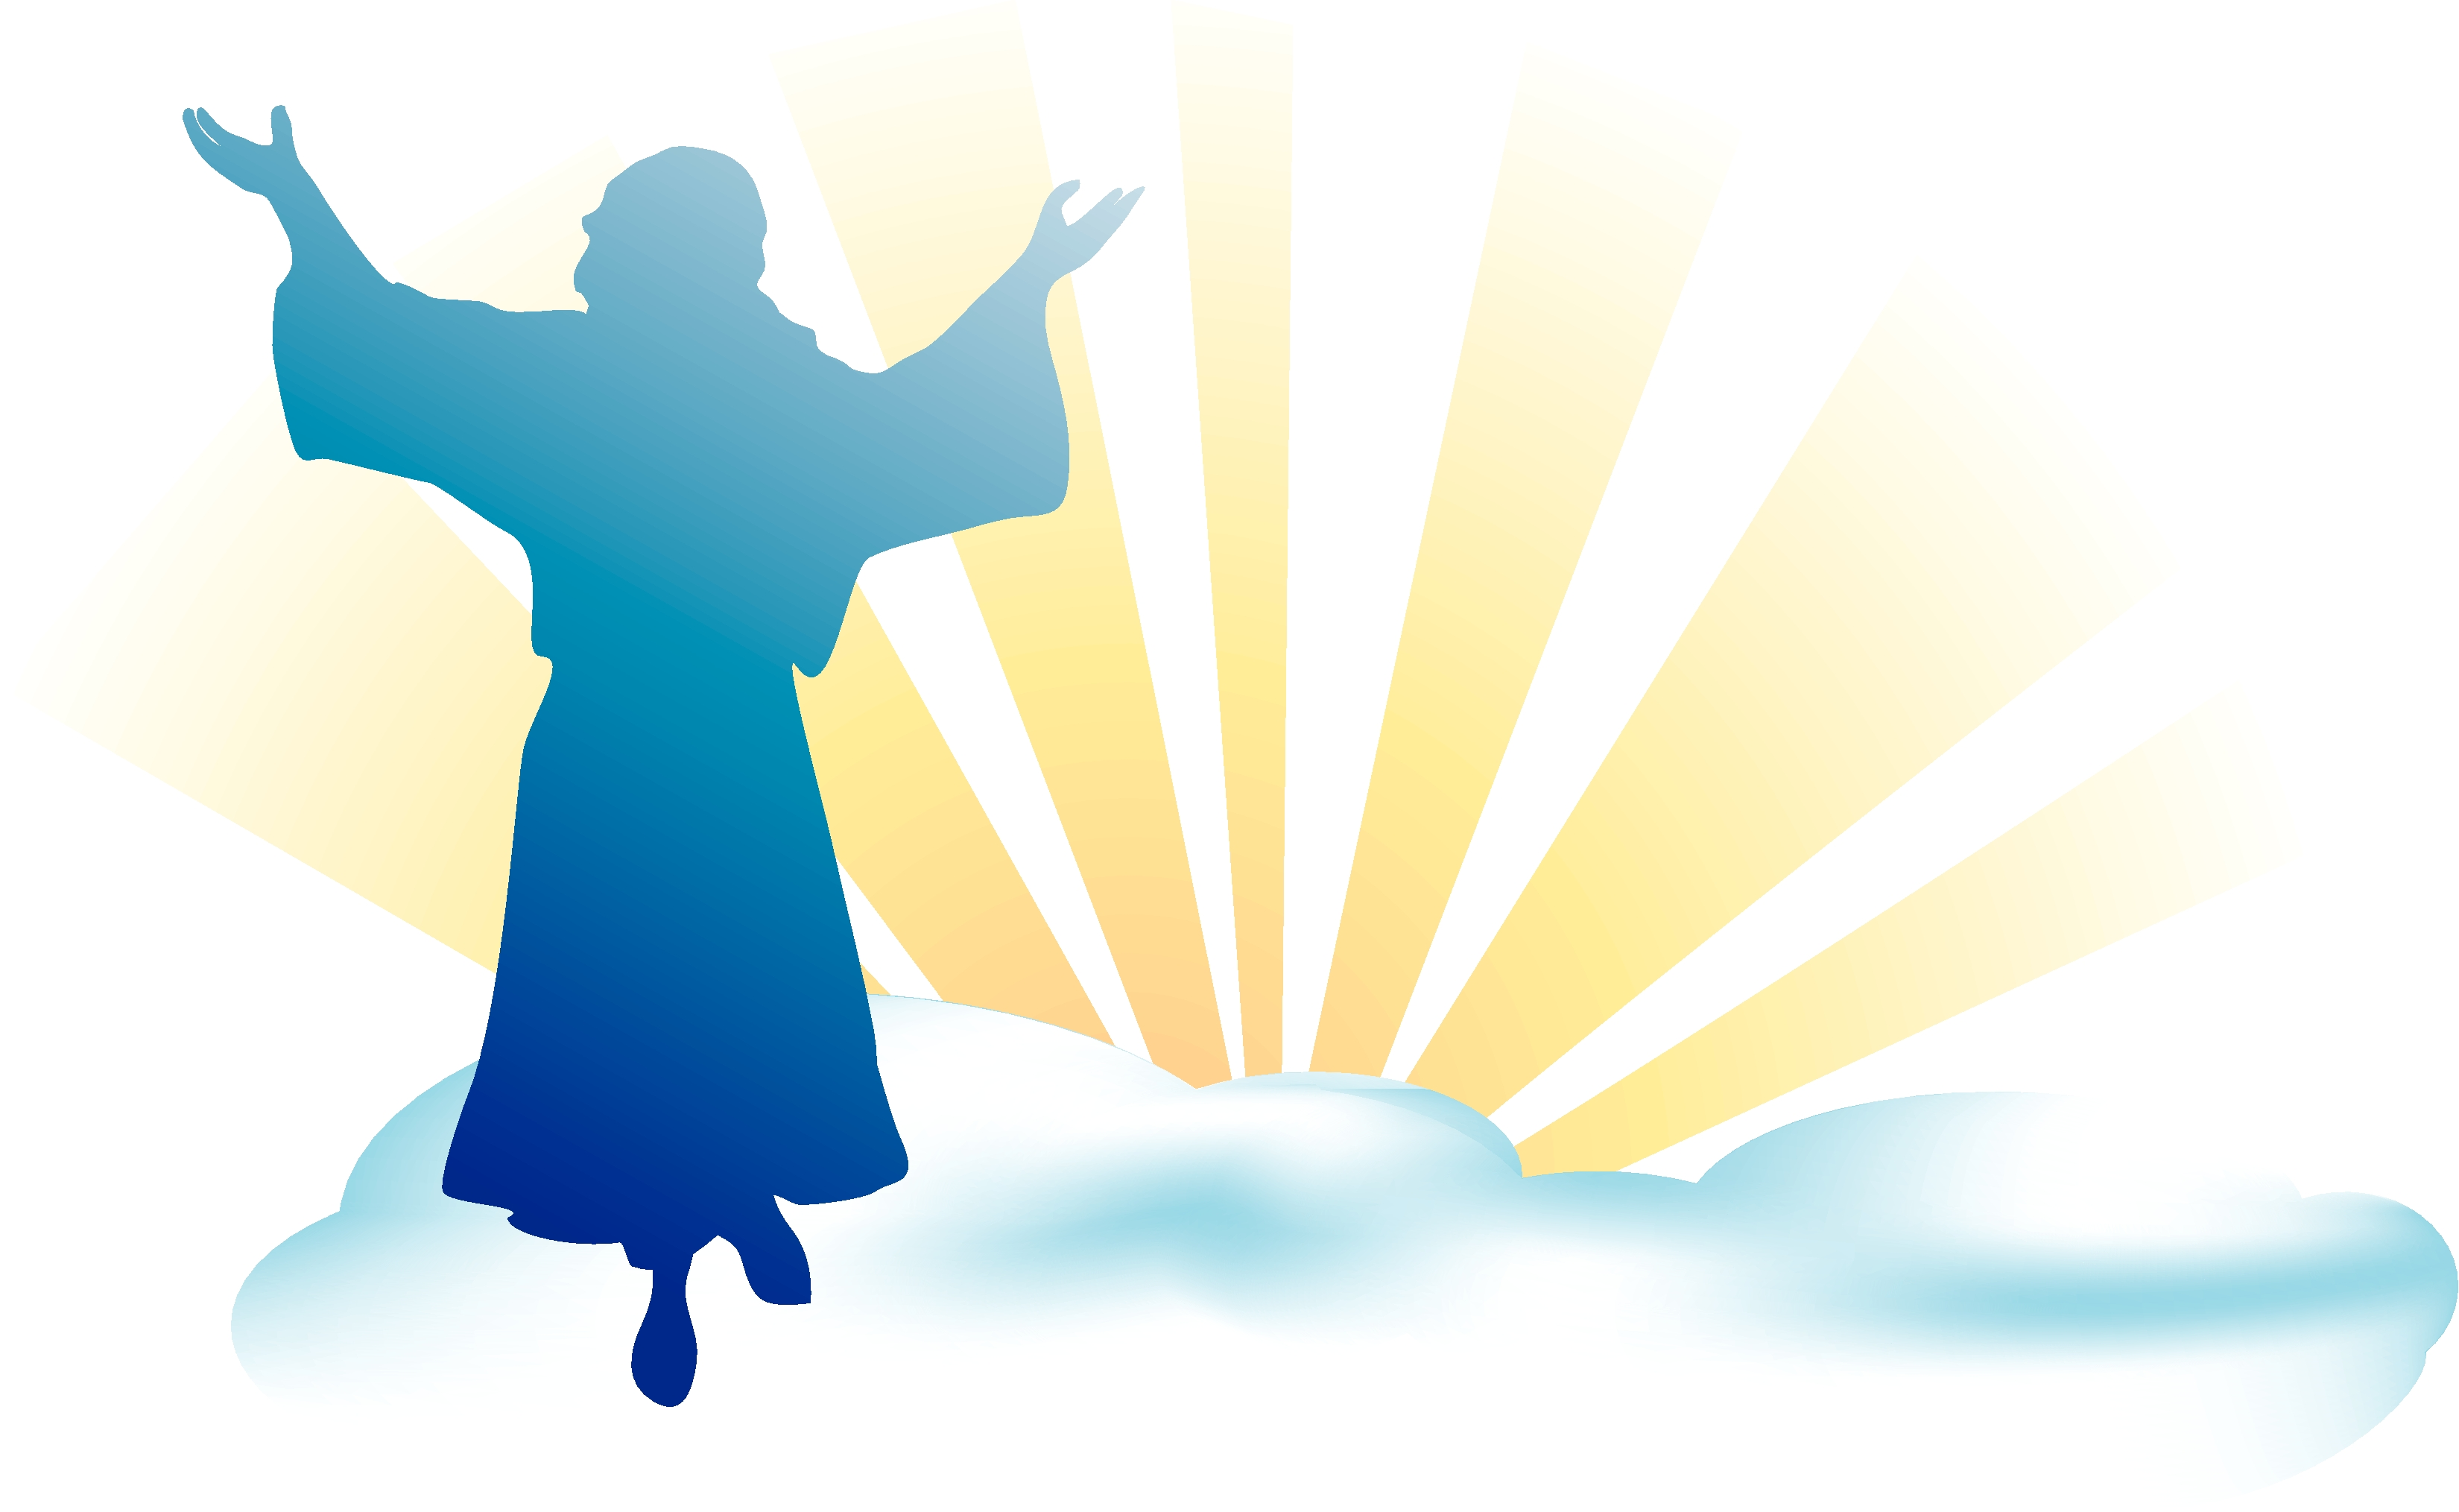 clipart of jesus ascending to heaven - photo #14